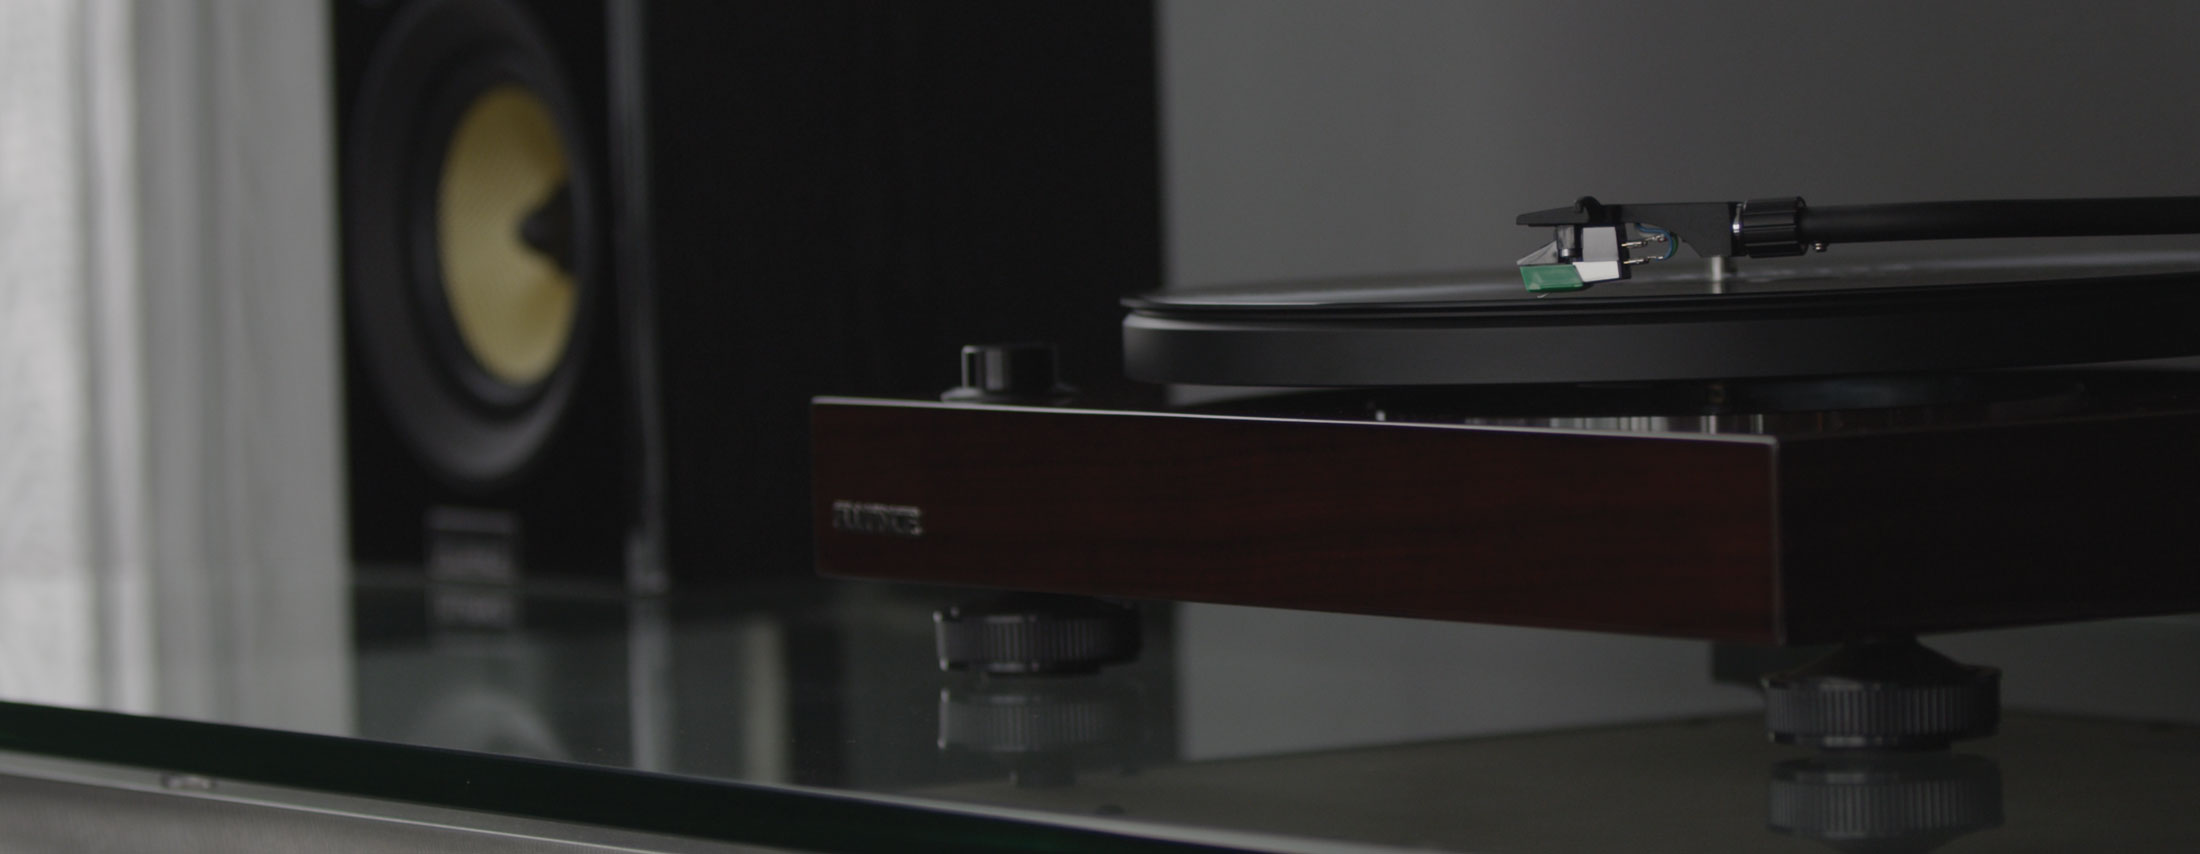 RT81 S-type Tone Arm